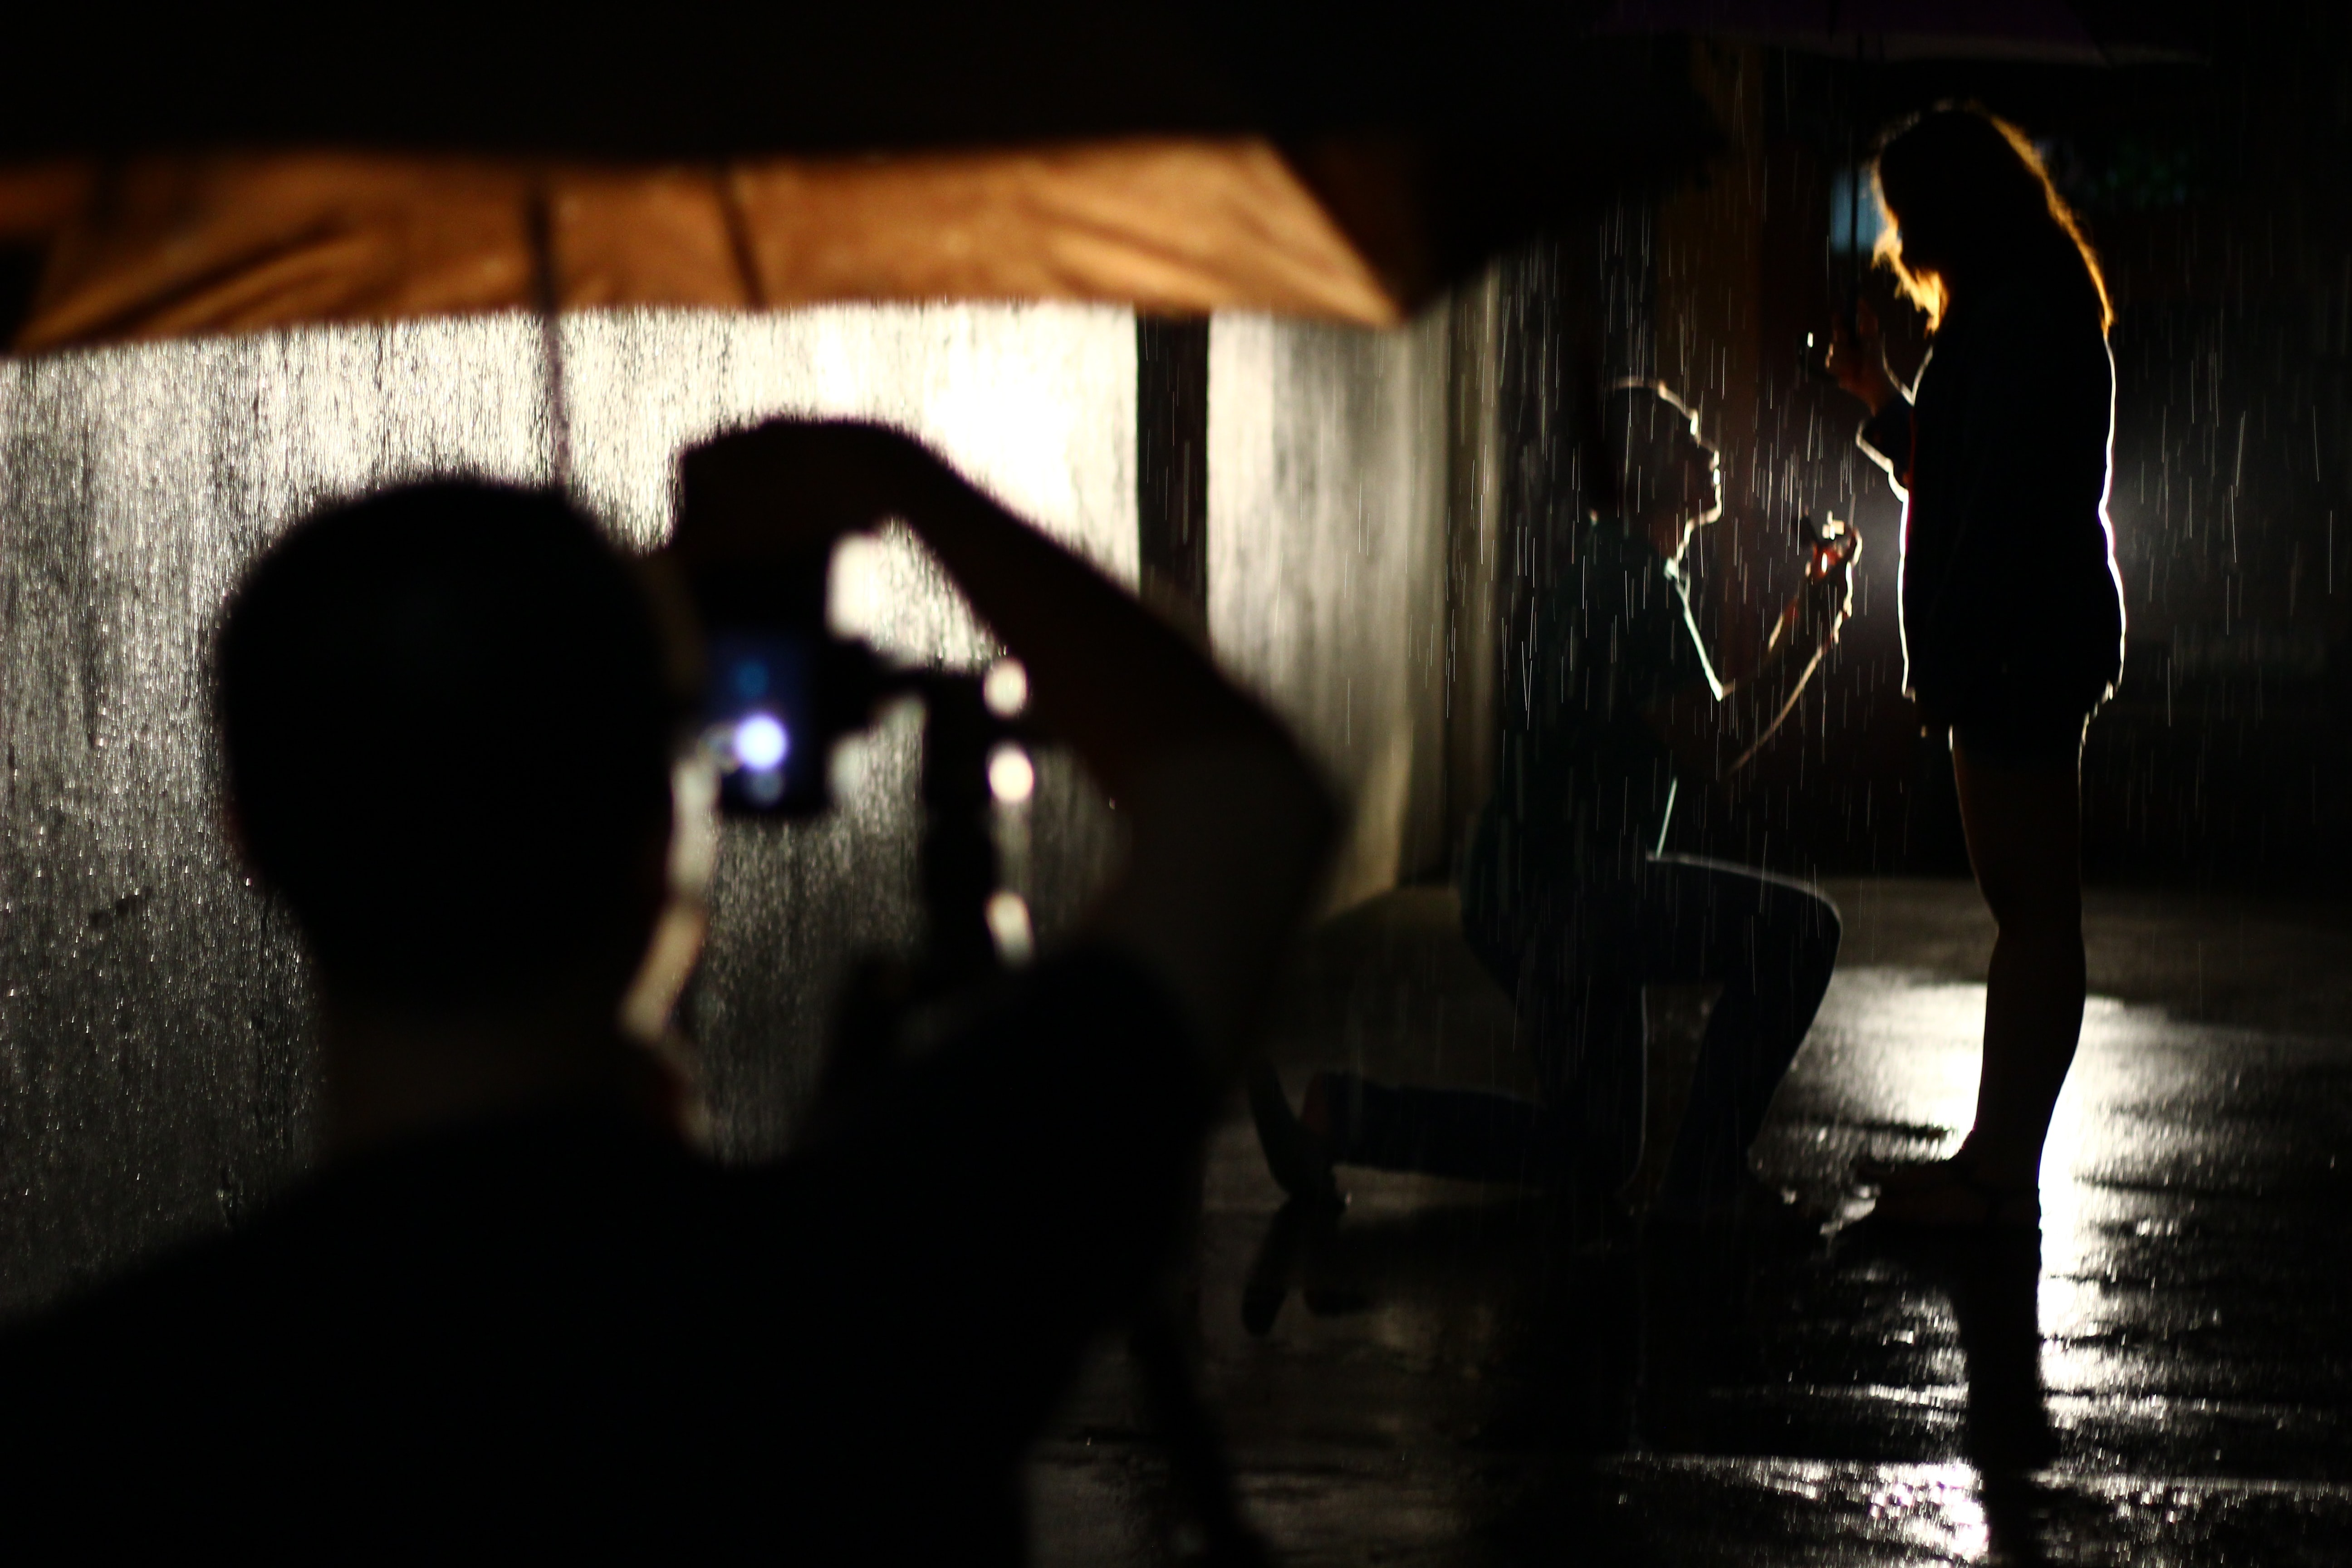 A man proposes to the woman in the nighttime rain. Someone with an umbrella photographs them.